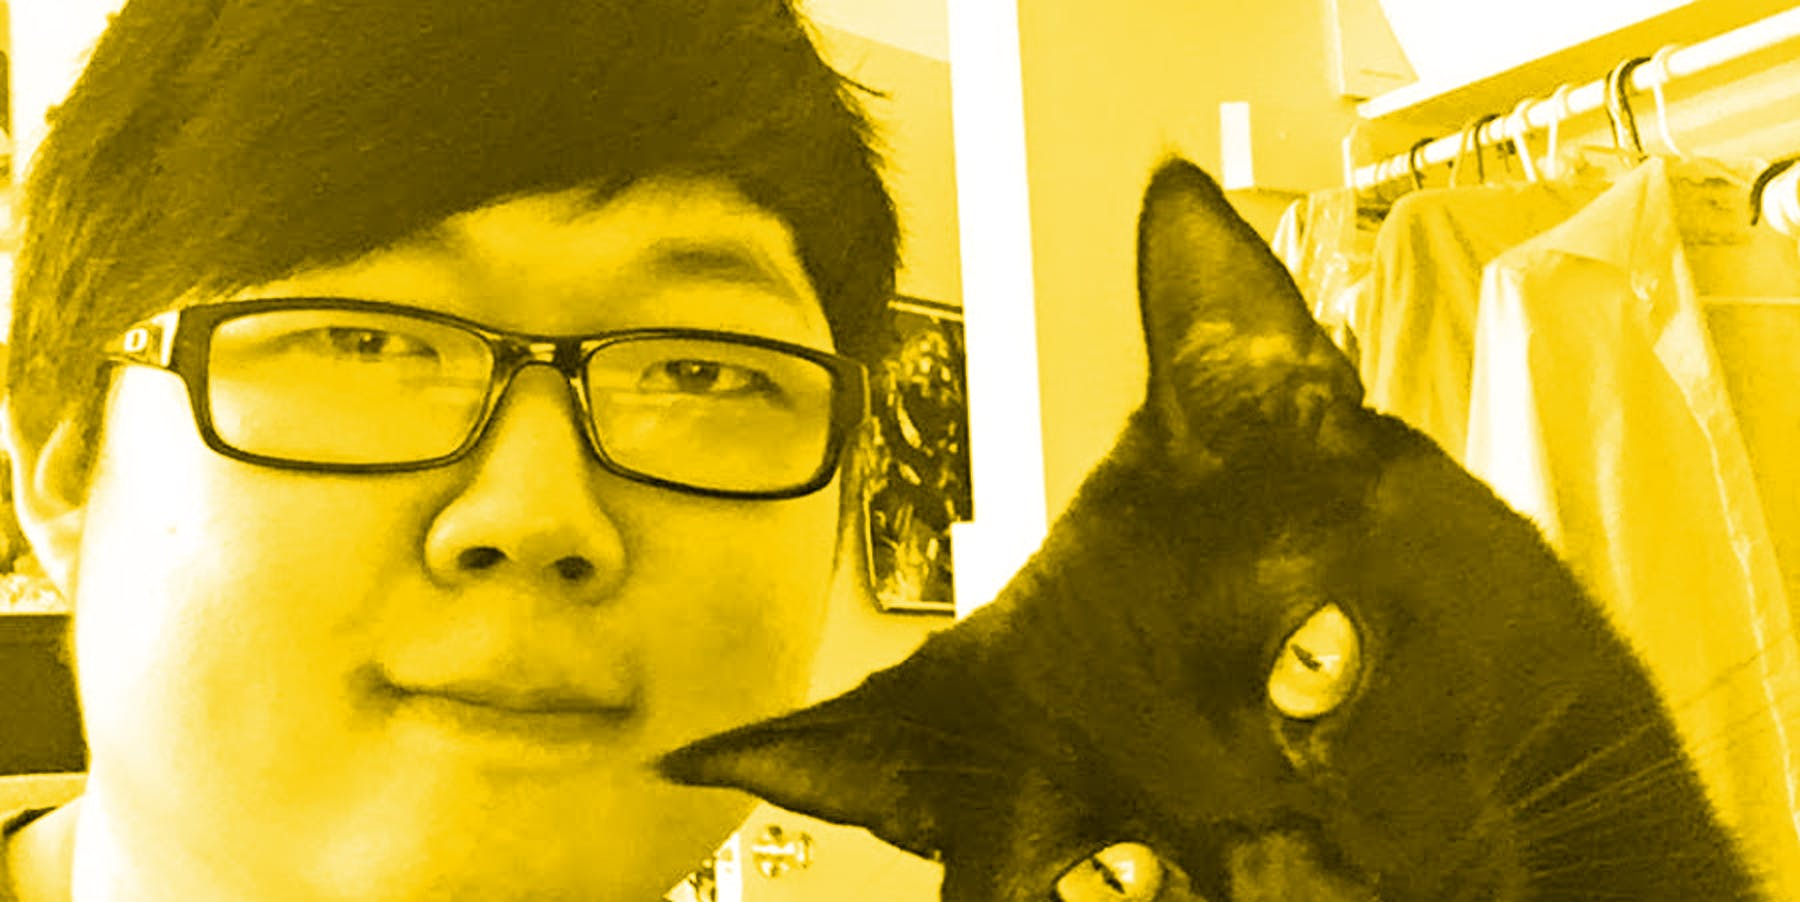 ProZD with his cat Effie